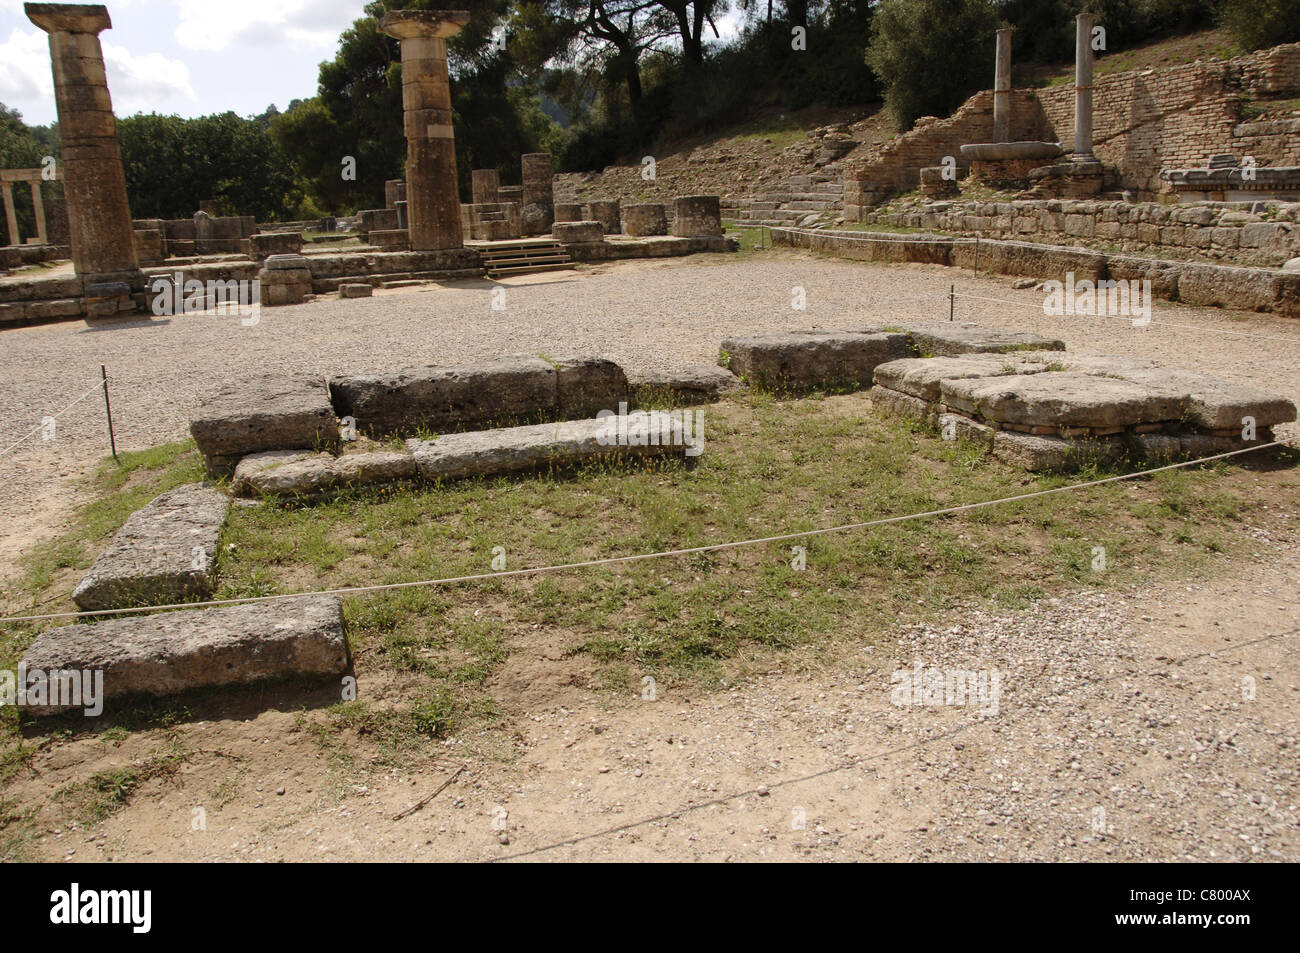 Greek Art. Altar of Hera. Is the location where the Olympic flame is lit the Olympic games. Olympia. Greece. - Stock Image